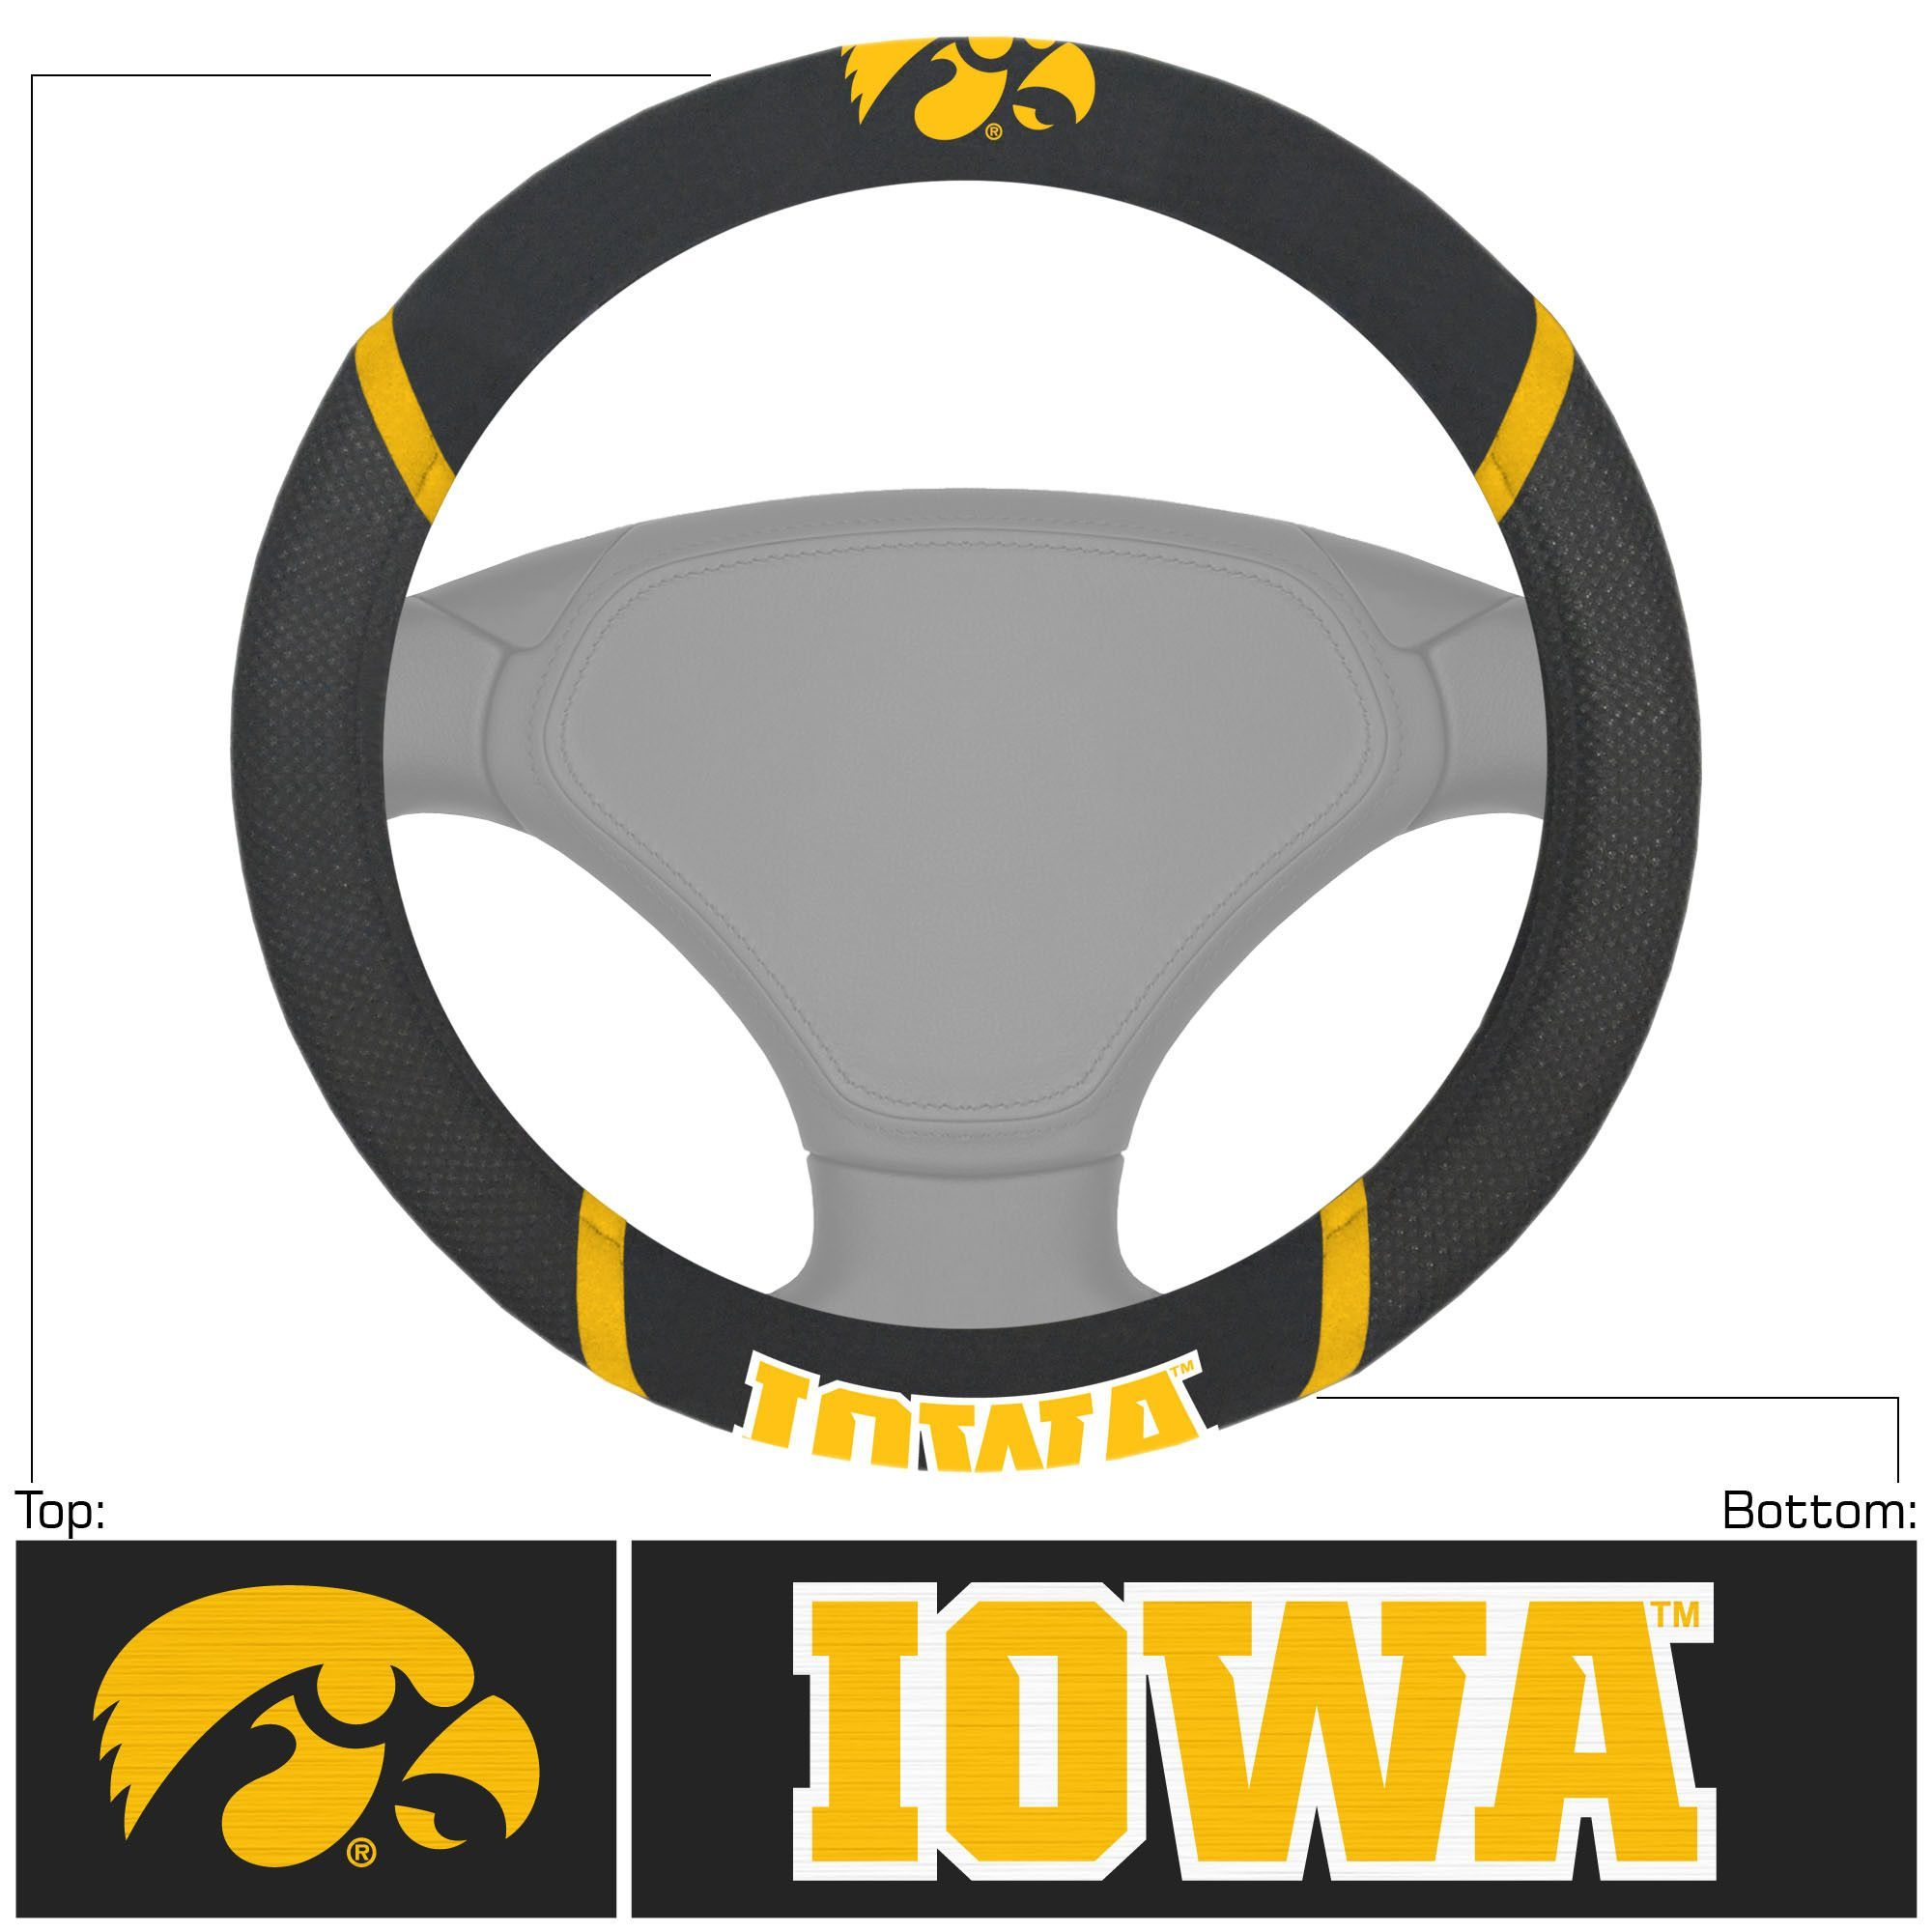 """University of Iowa Steering Wheel Cover 15x15 - Dress up the interior of your vehicle with a steering wheel cover featuring your favorite team. Logo and team name are embroidered. Made of mesh fabric and faux suede. They stay cool in the summer and warm in the winter. Universal fit makes it perfect for most vehicles. FANMATS Series: STEERCOVERTeam Series: University of IowaProduct Dimensions: 15""""x15""""Shipping Dimensions: 15""""x15""""x1"""". Gifts > Licensed Gifts > Ncaa > All Colleges > University Of…"""